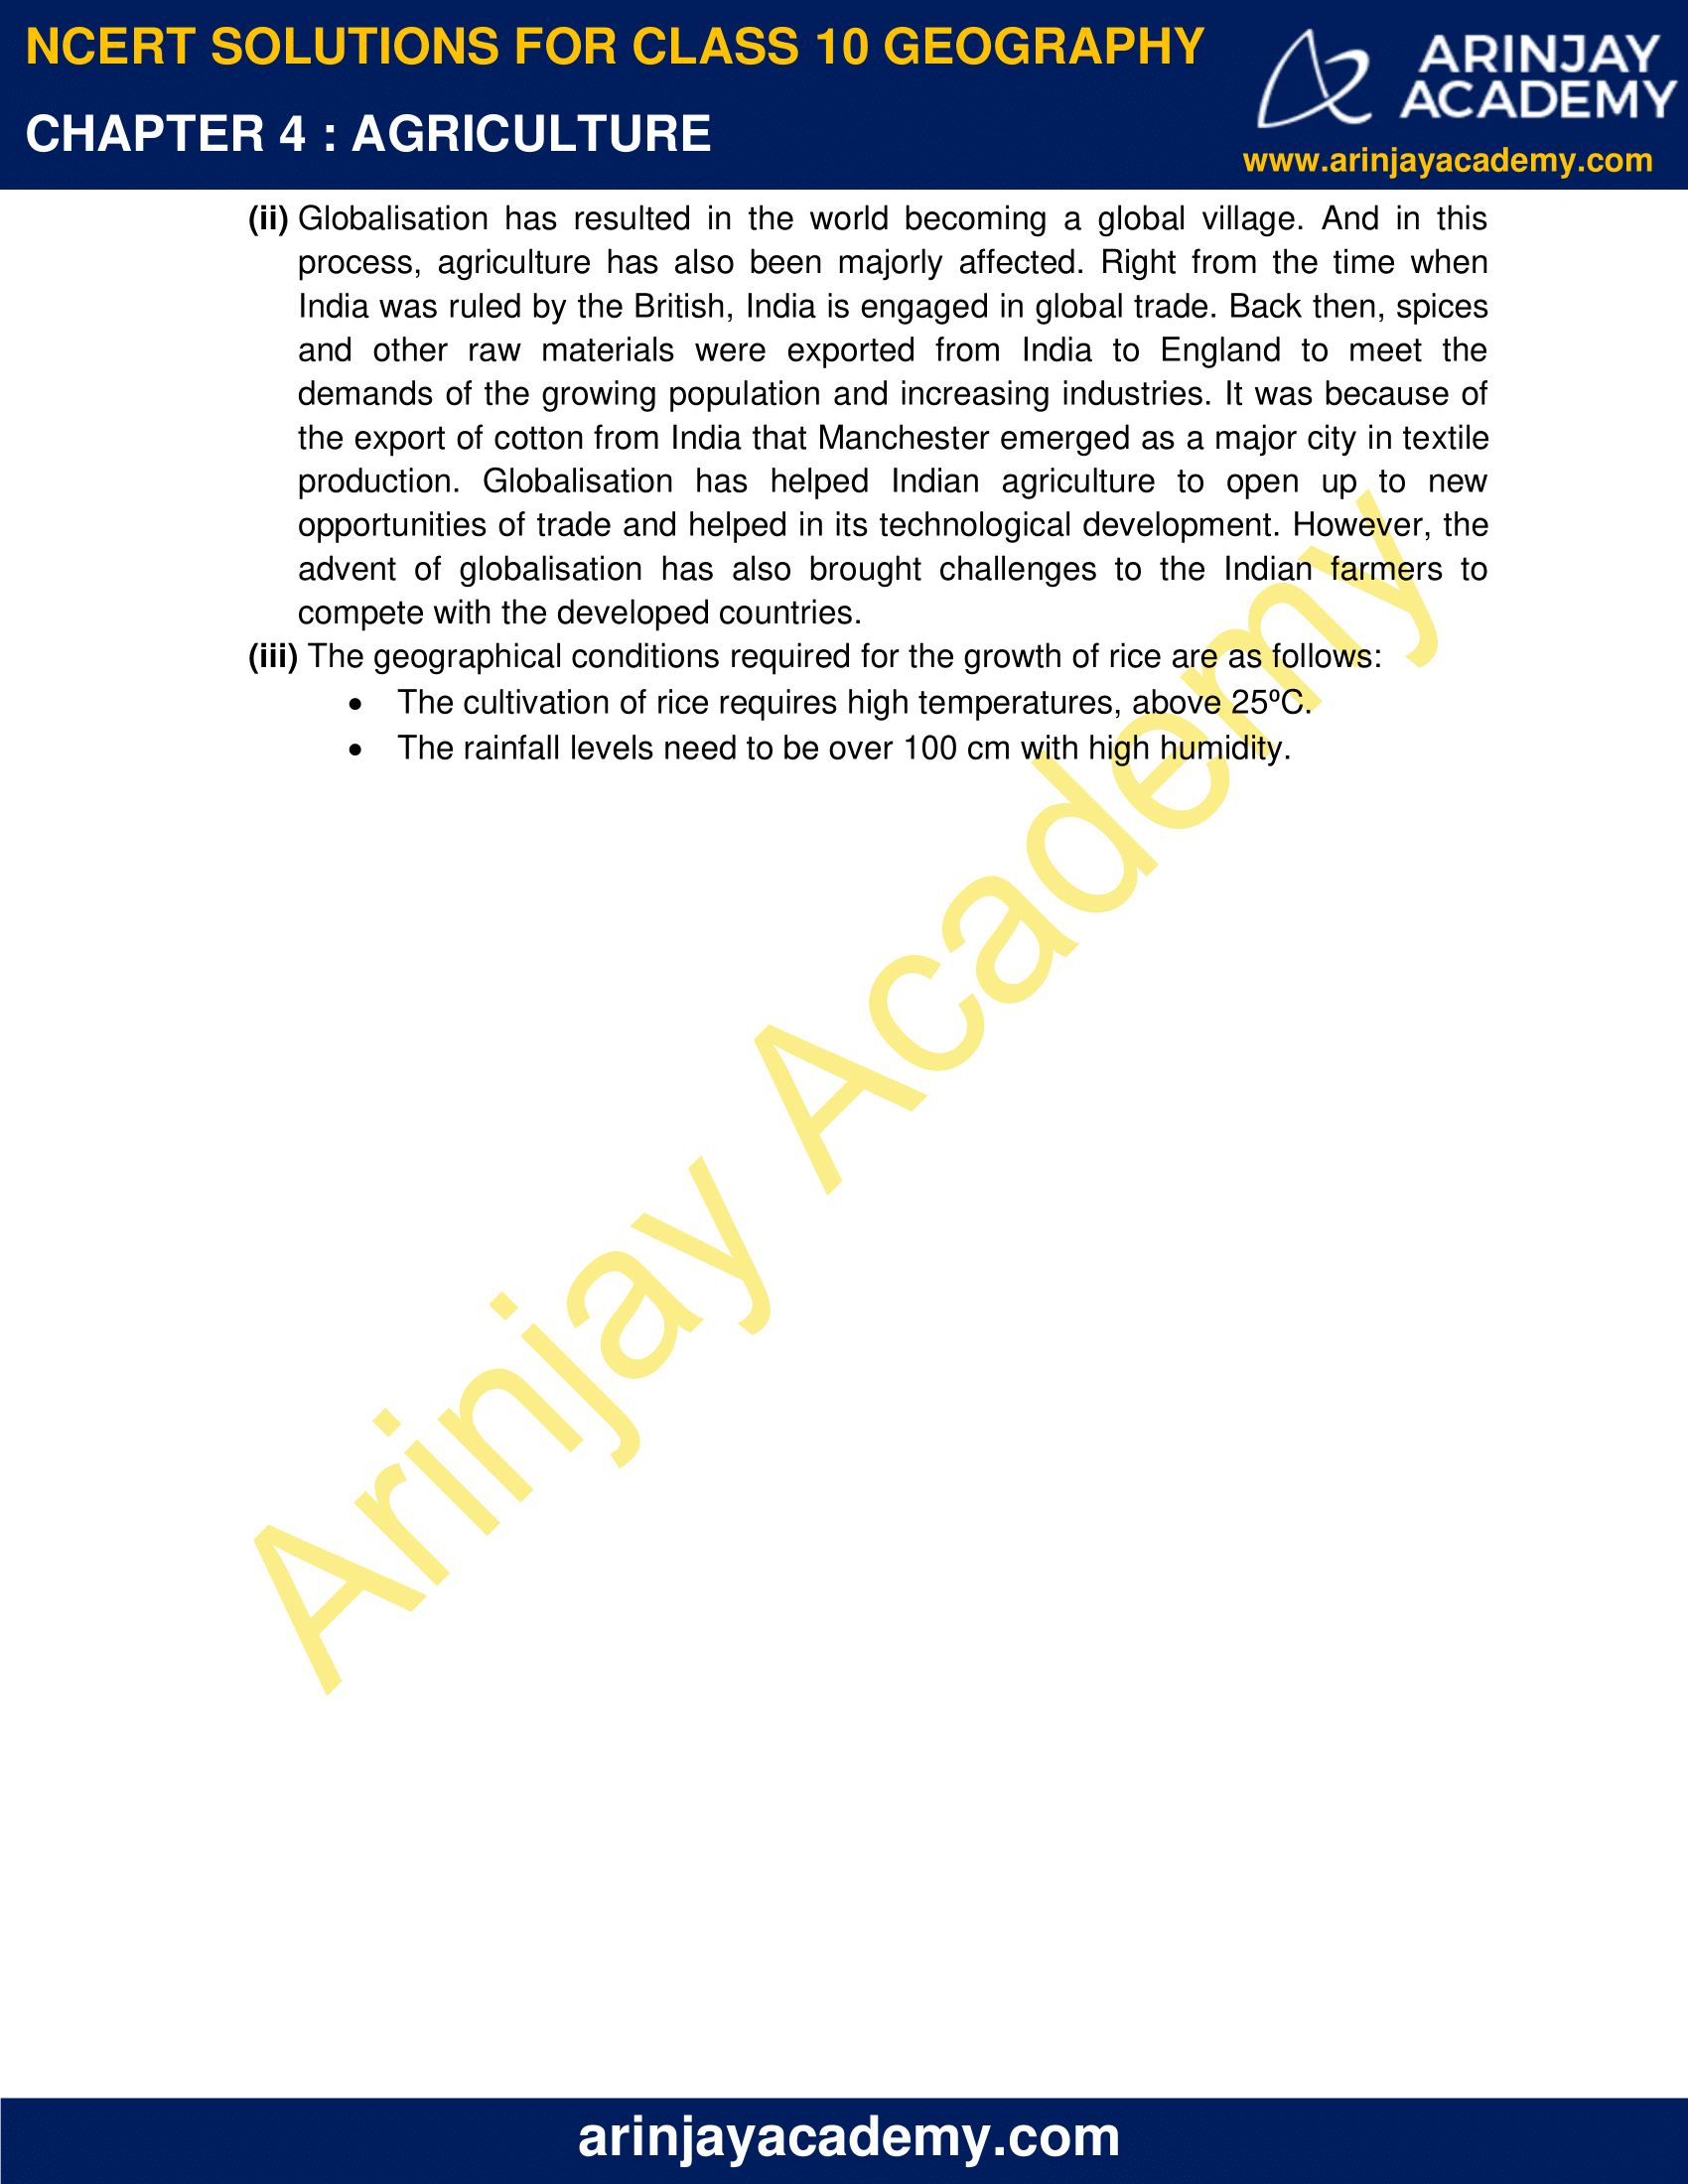 NCERT Solutions for Class 10 Geography Chapter 4 image 3